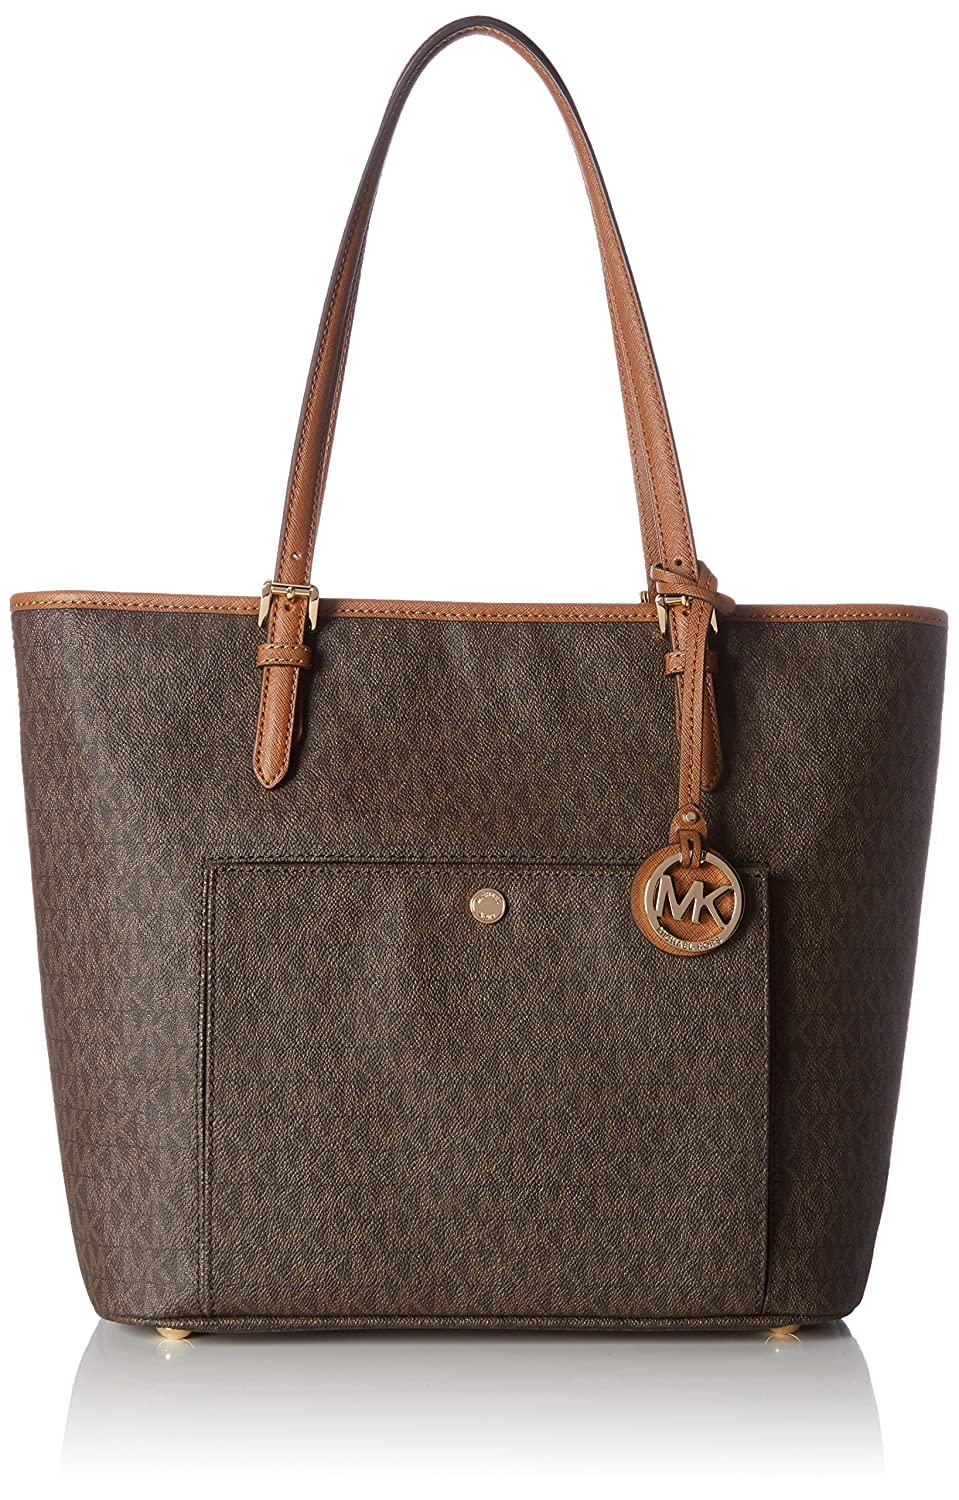 MICHAEL Michael Kors Jet Set Large Saffiano Leather Tote 30S6GTTT3L